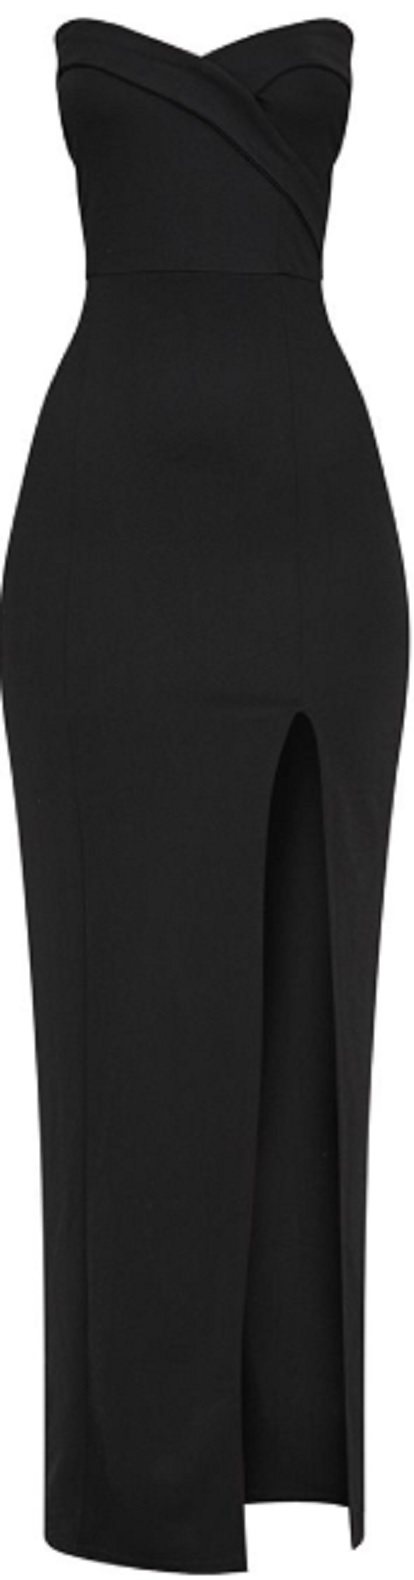 BLACK BANDEAU FOLDED DETAIL EXTREME SPLIT MAXI DRESS